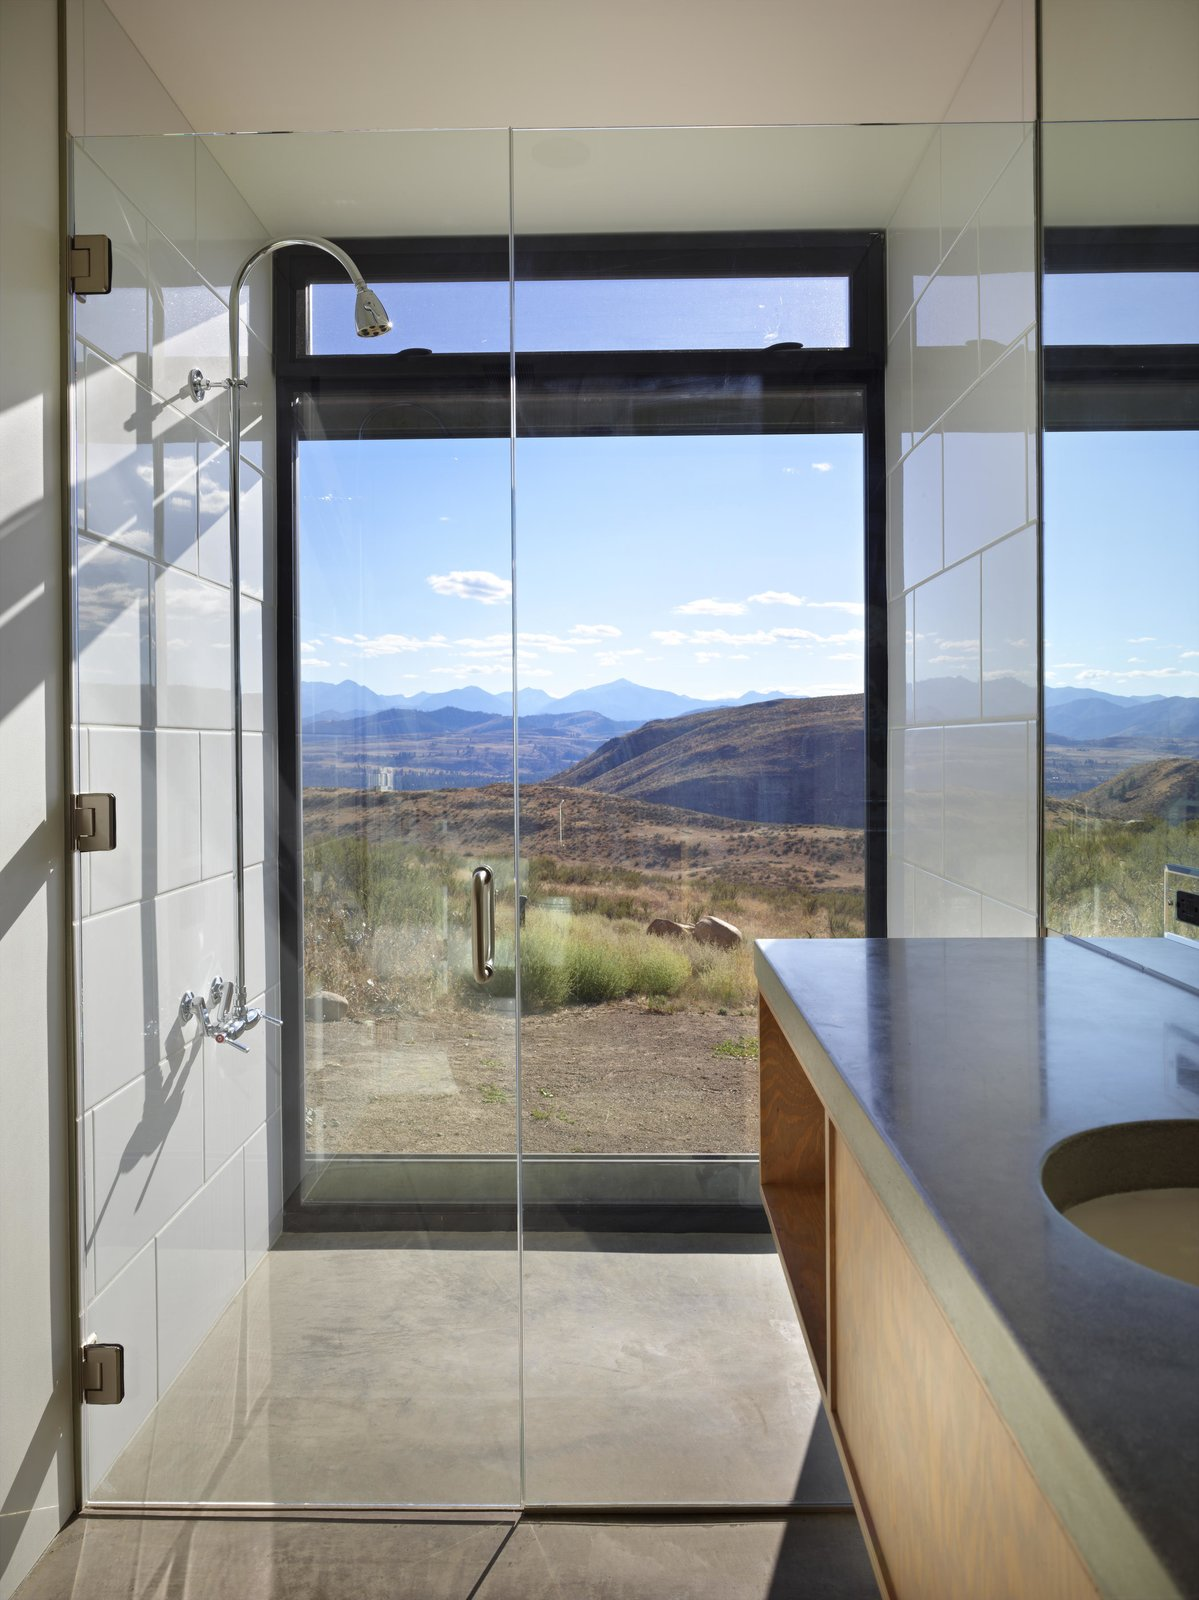 Studhorse | Olson Kundig Tagged: Bath Room, Undermount Sink, Concrete Counter, Ceramic Tile Wall, and Full Shower.  Studhorse by Olson Kundig